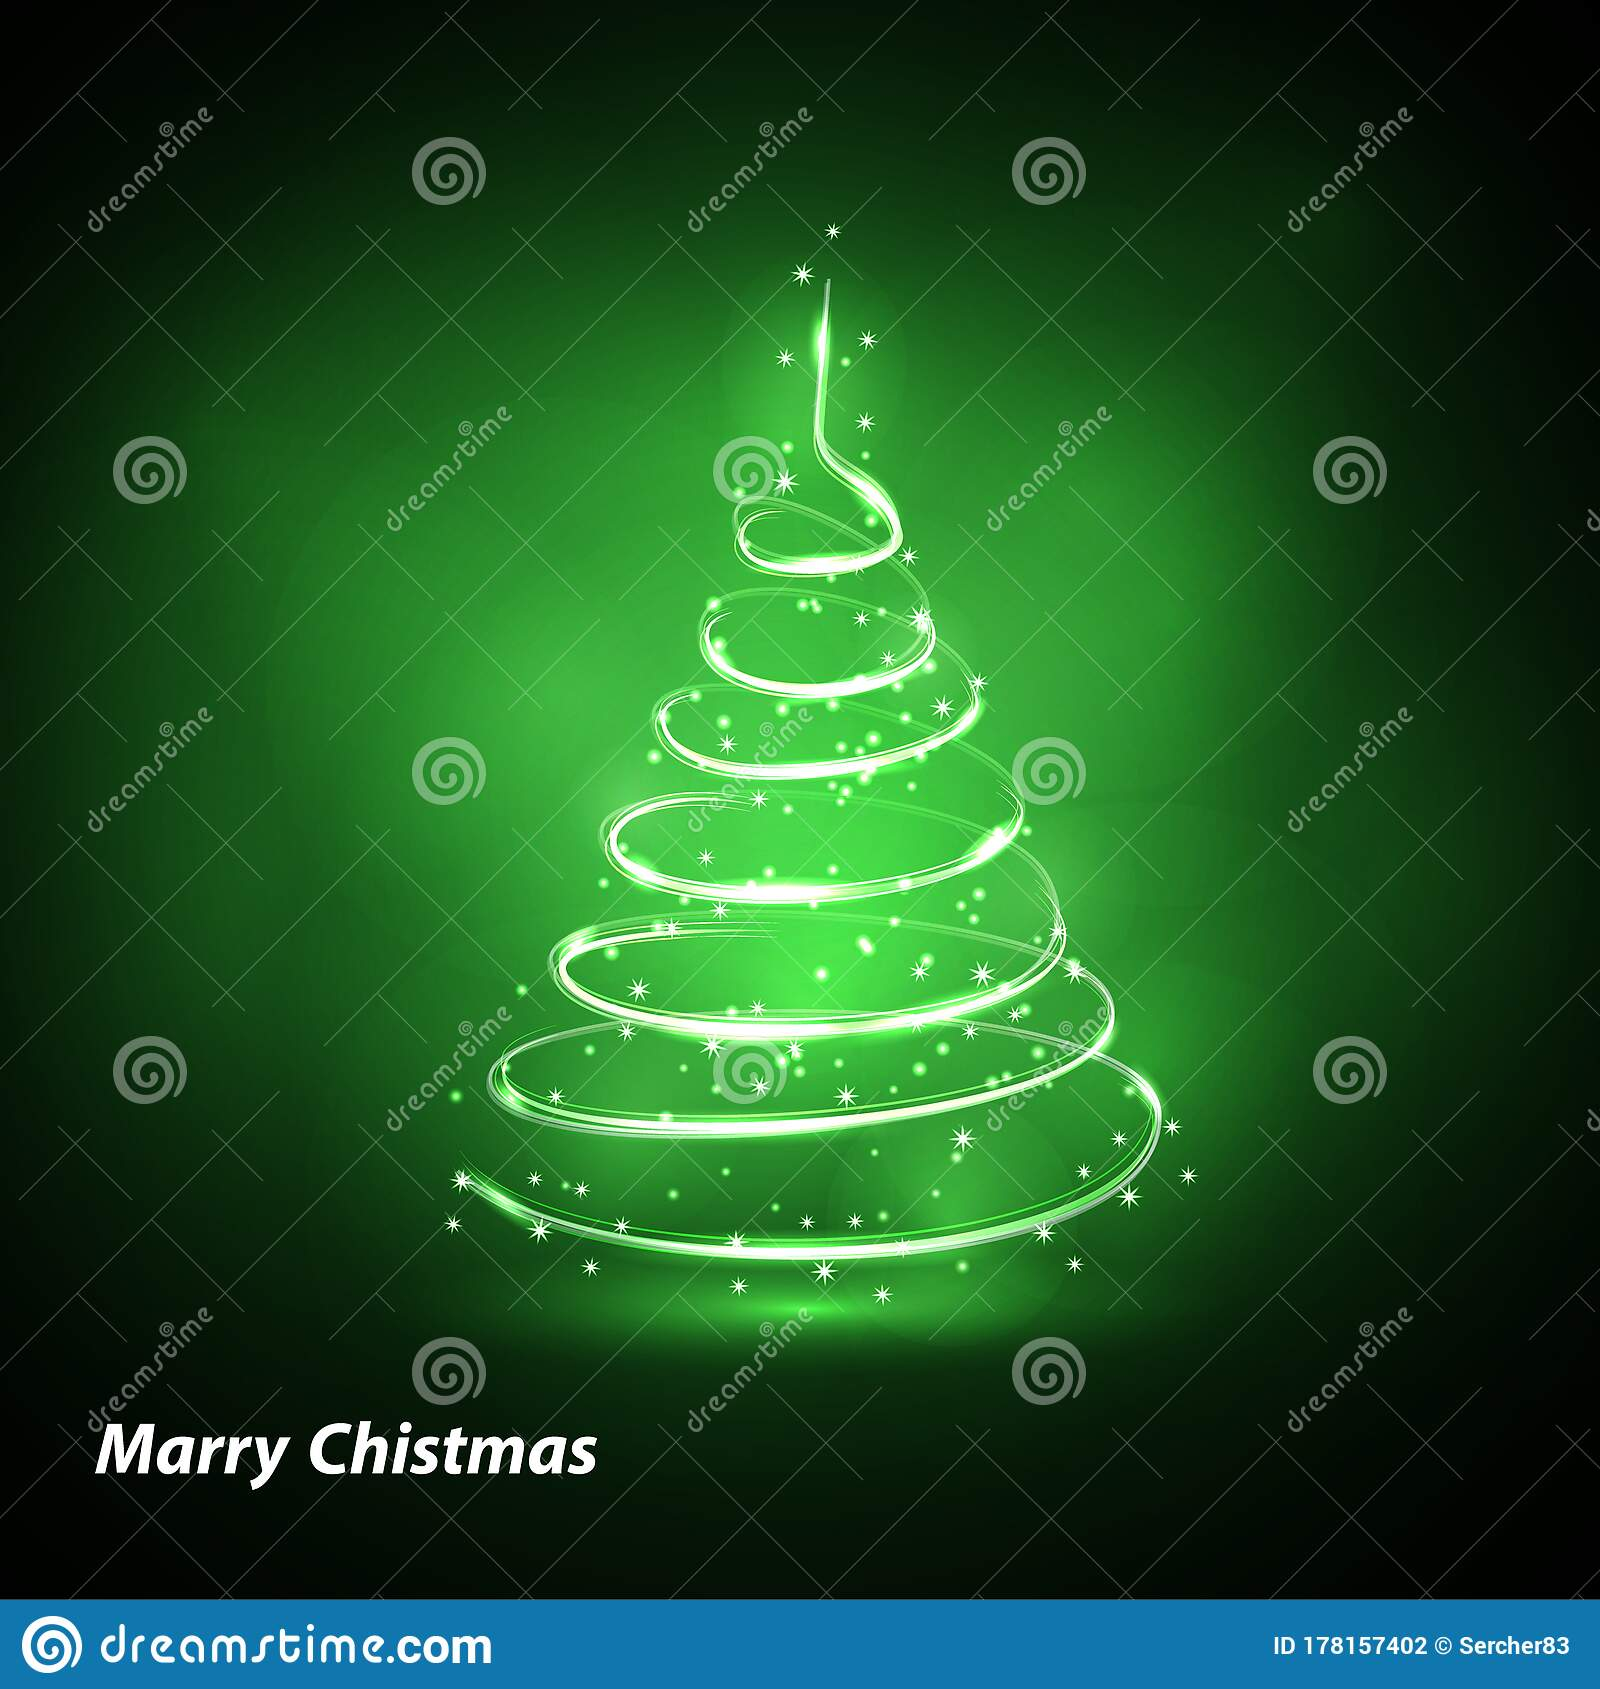 christmas tree on transparent background gold christmas tree as symbol of happy new year merry christmas holiday stock vector illustration of greeting light 178157402 christmas tree on transparent background gold christmas tree as symbol of happy new year merry christmas holiday stock vector illustration of greeting light 178157402